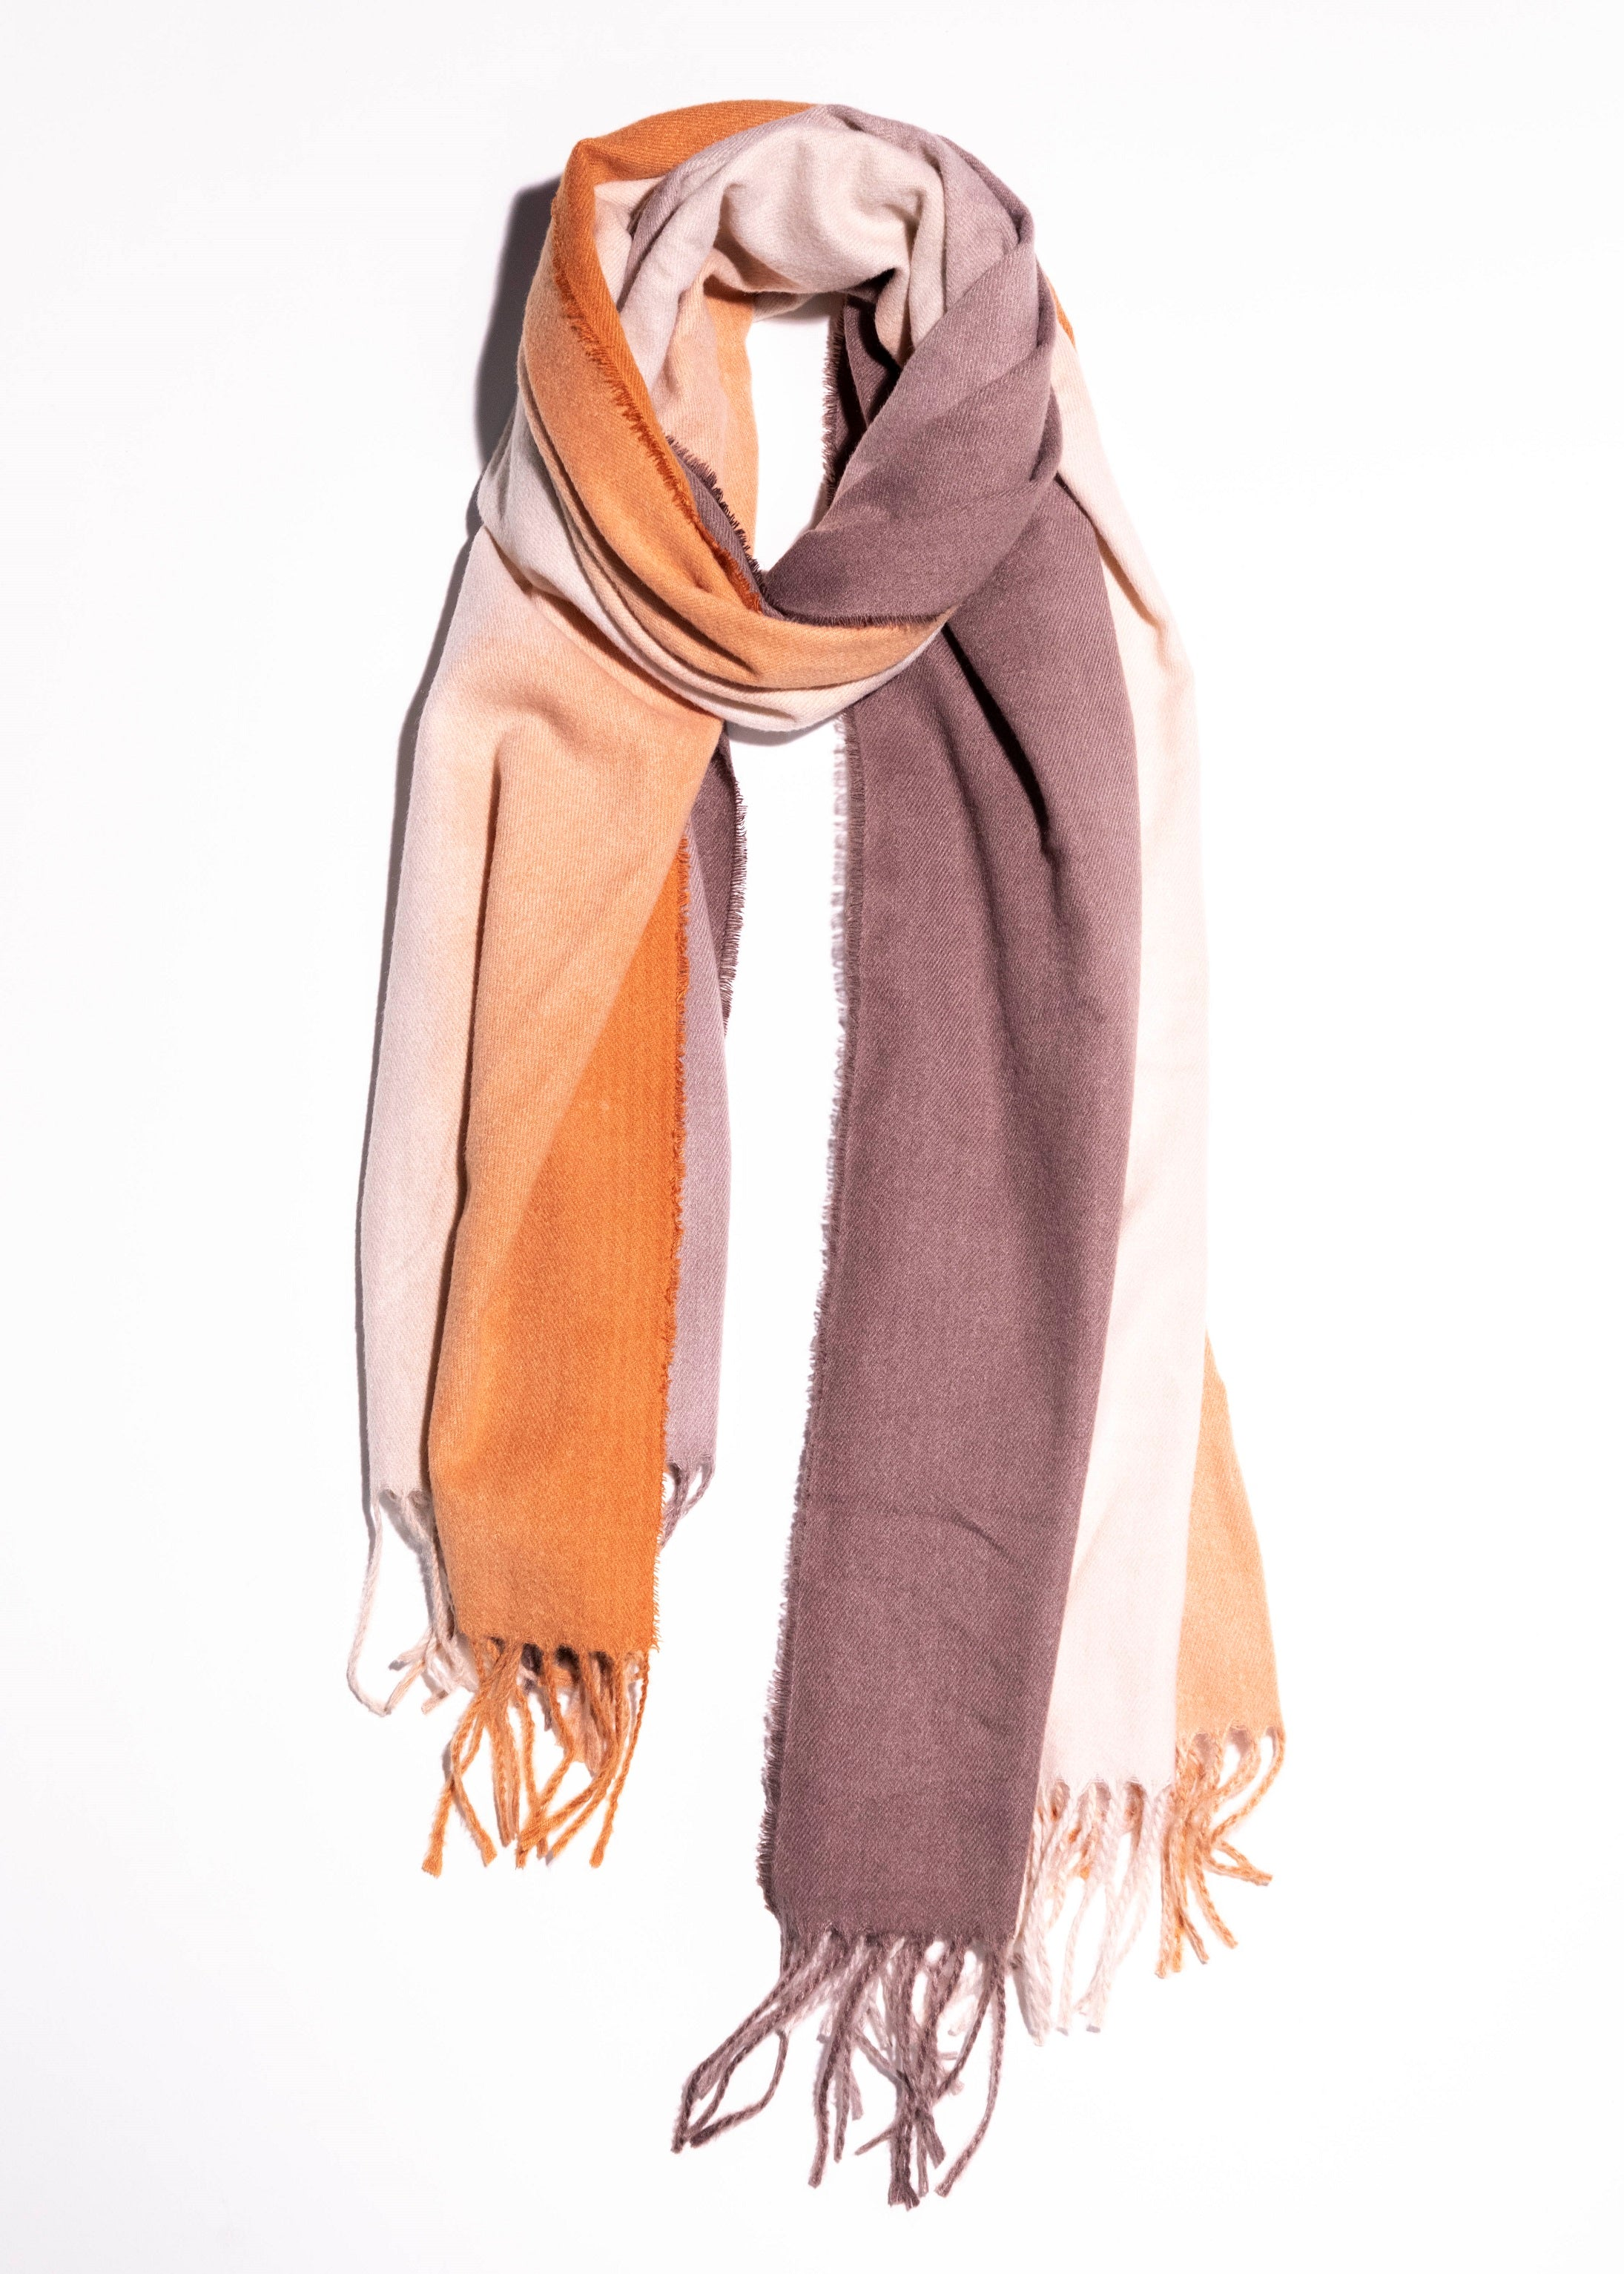 Tie-Dyed Fringe scarf - picnic-sf